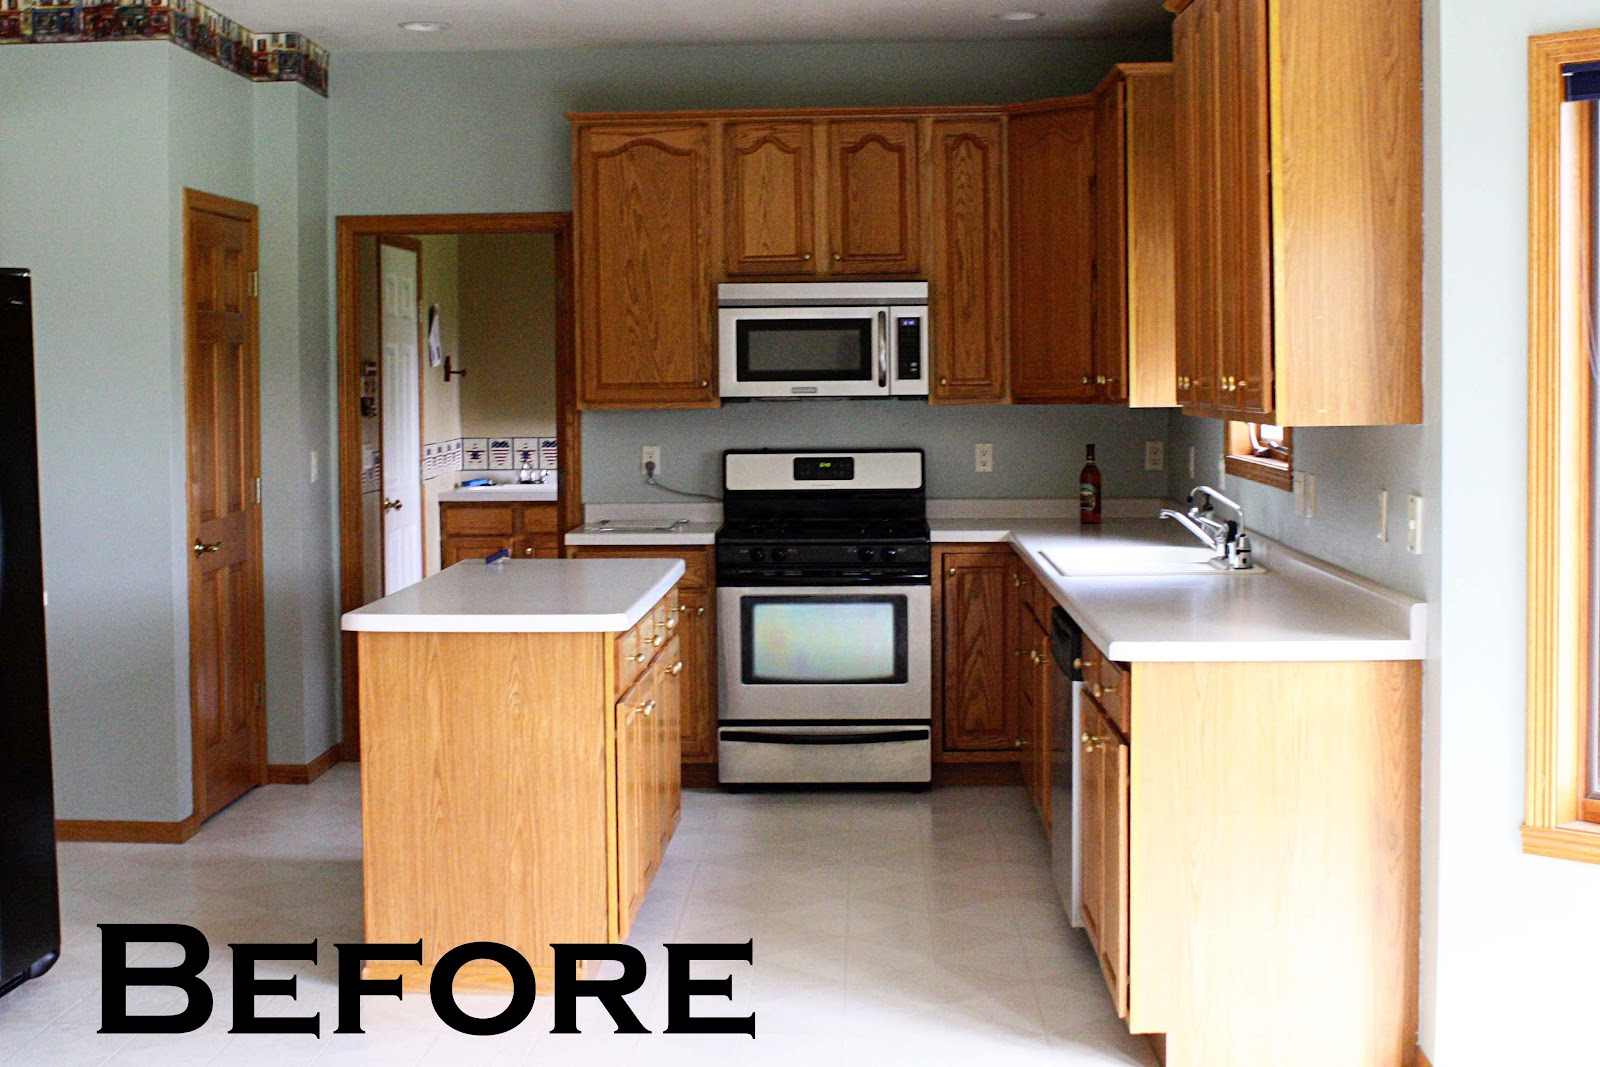 what a change it made! The cabinets look like a whole new wood tone